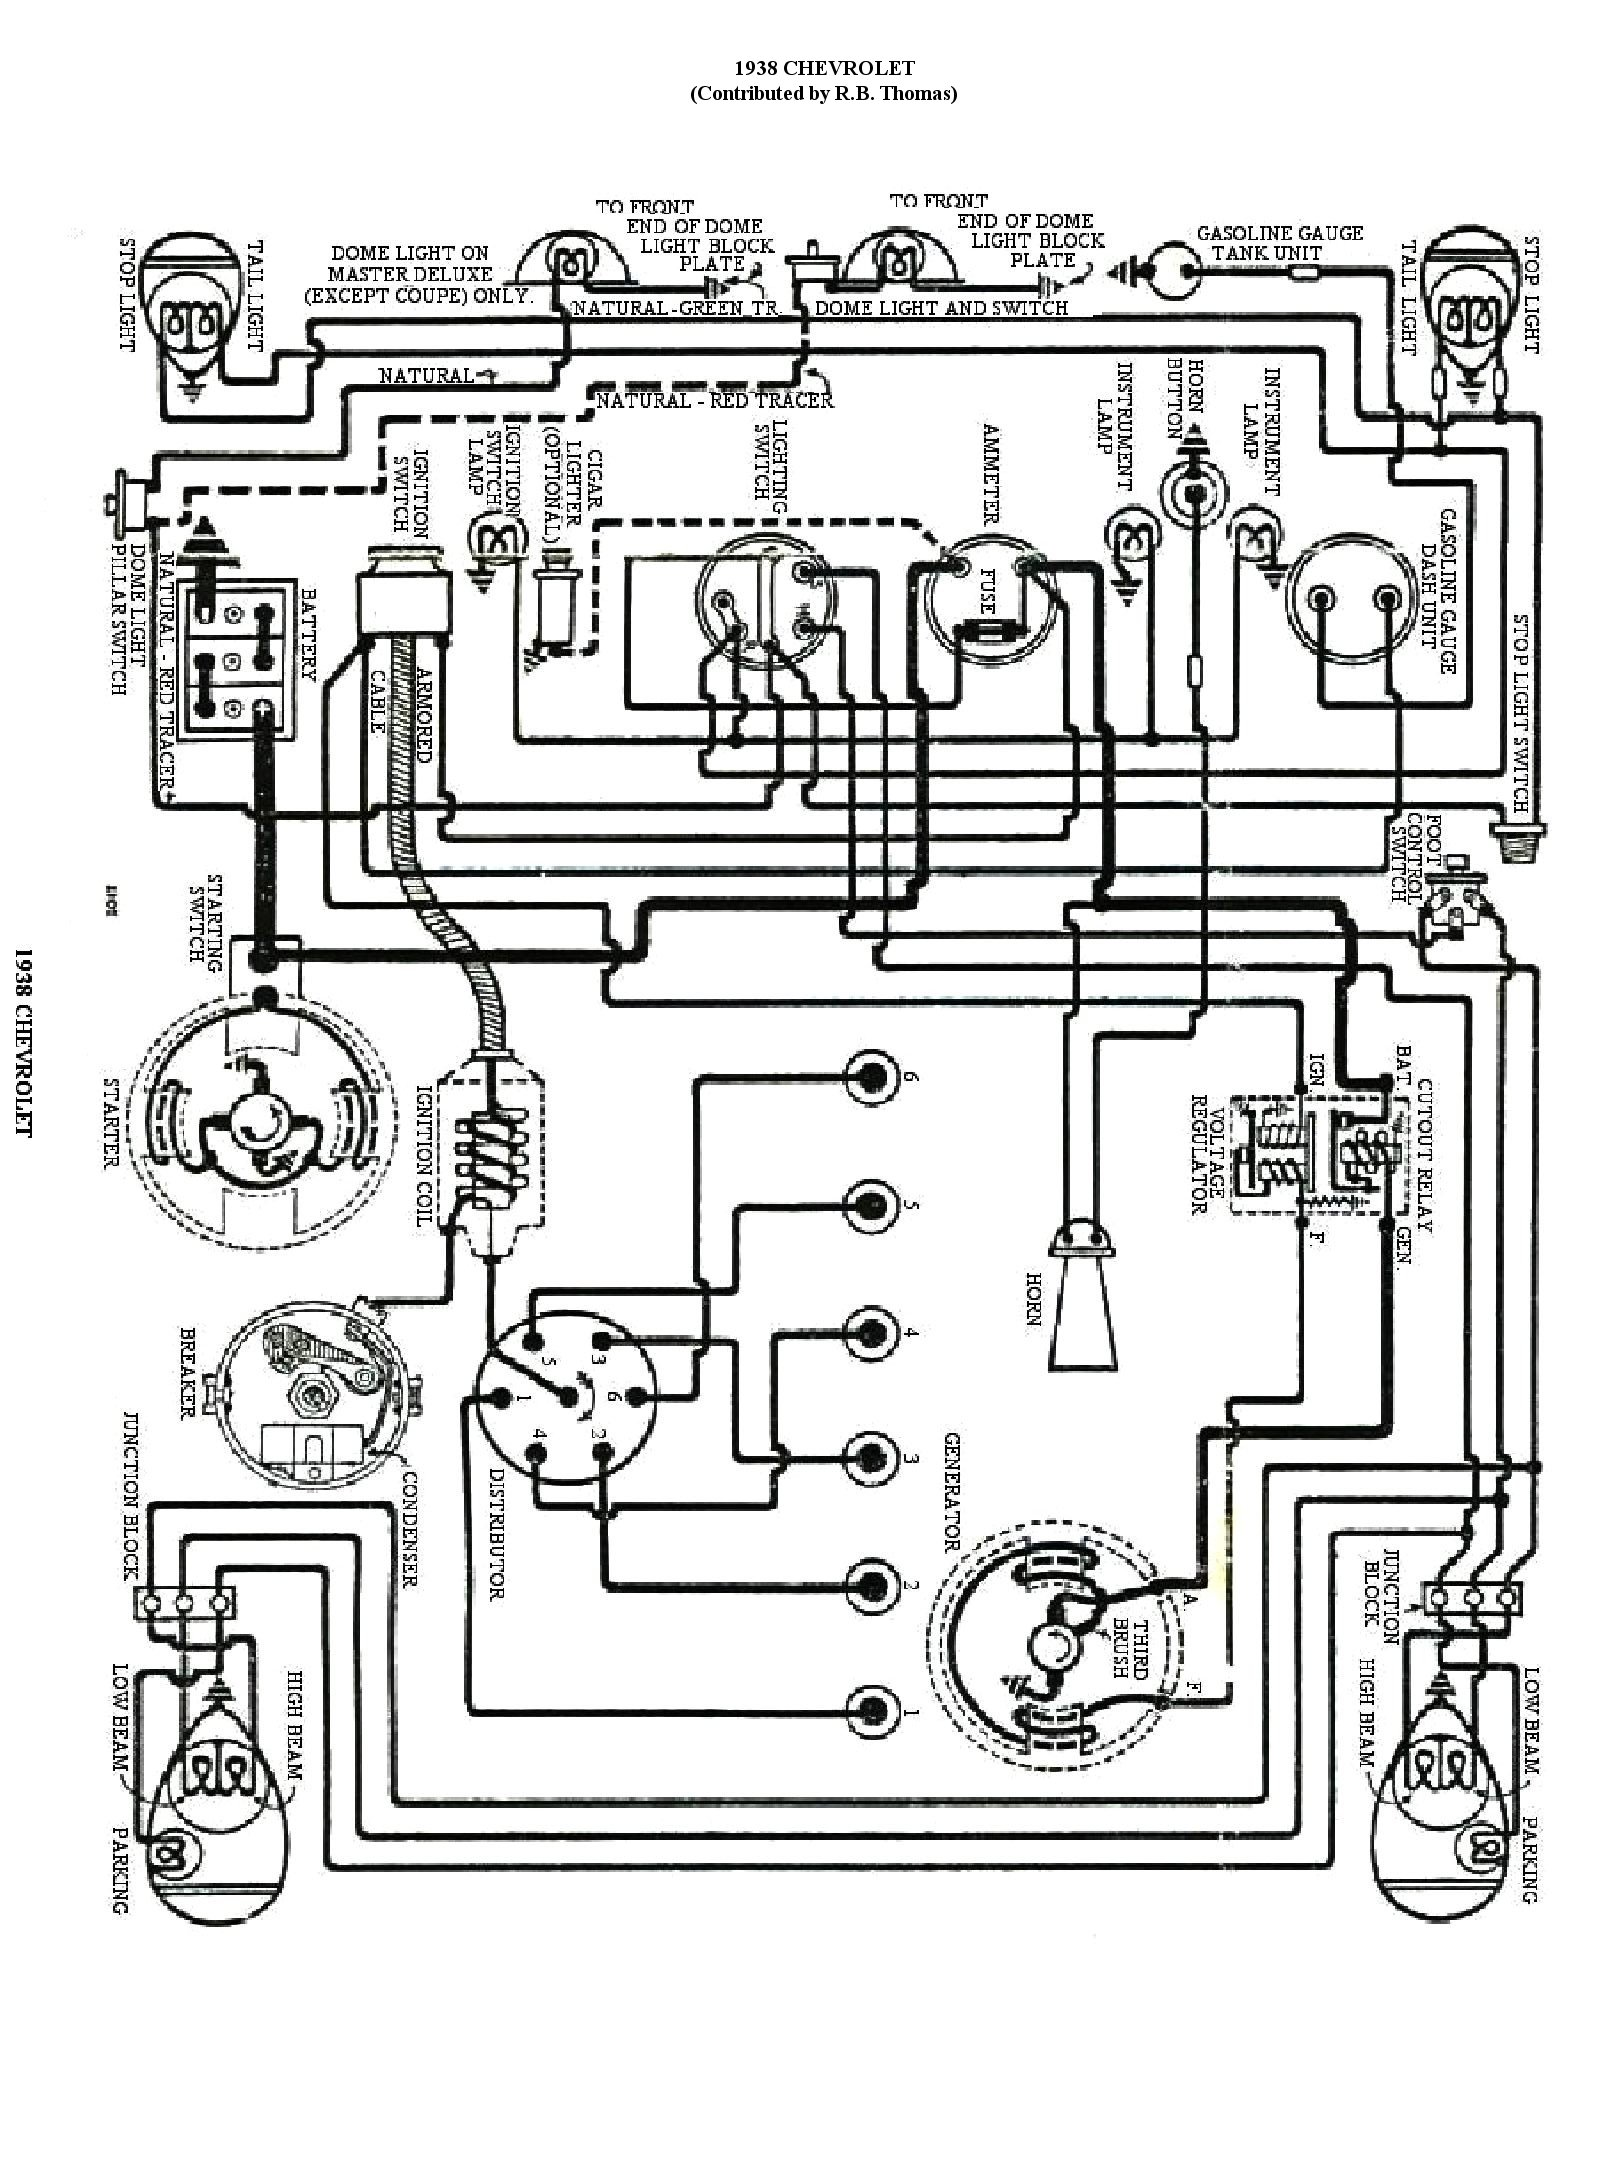 Chevy wiring diagrams rh chevy oldcarmanualproject